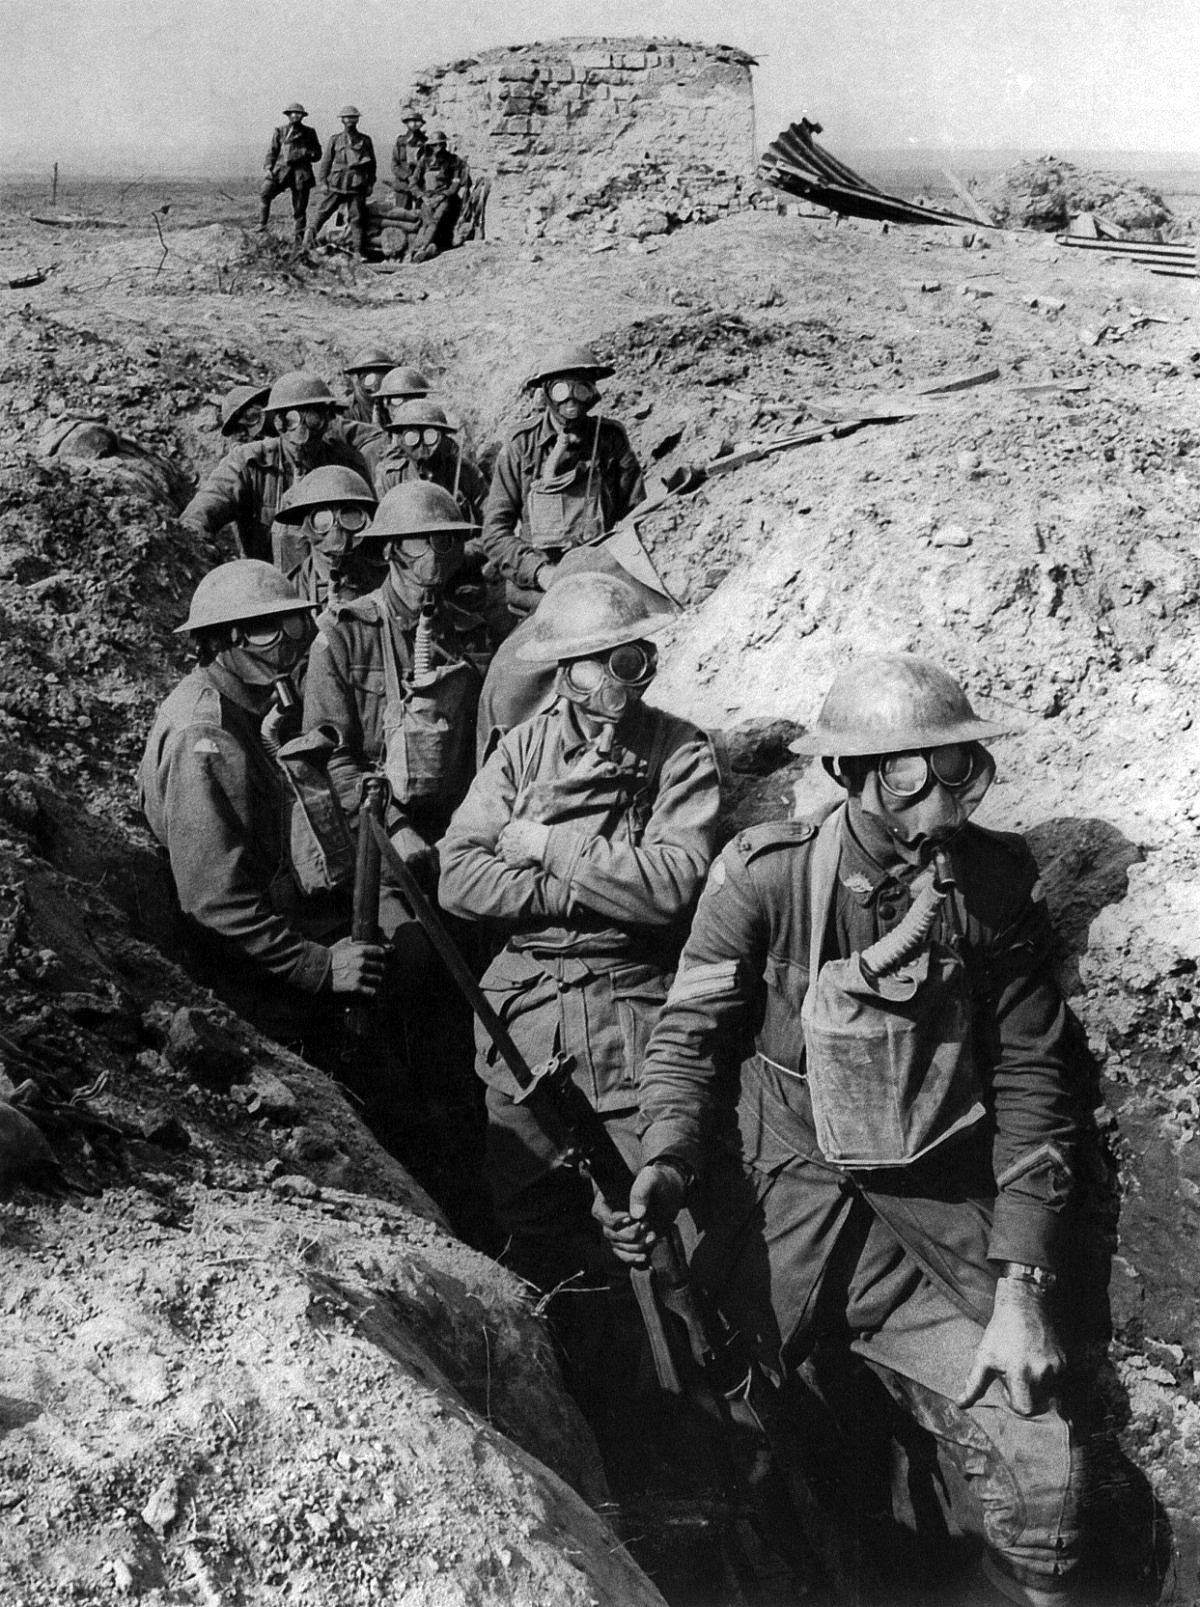 http://upload.wikimedia.org/wikipedia/commons/3/34/Australian_infantry_small_box_respirators_Ypres_1917.jpg